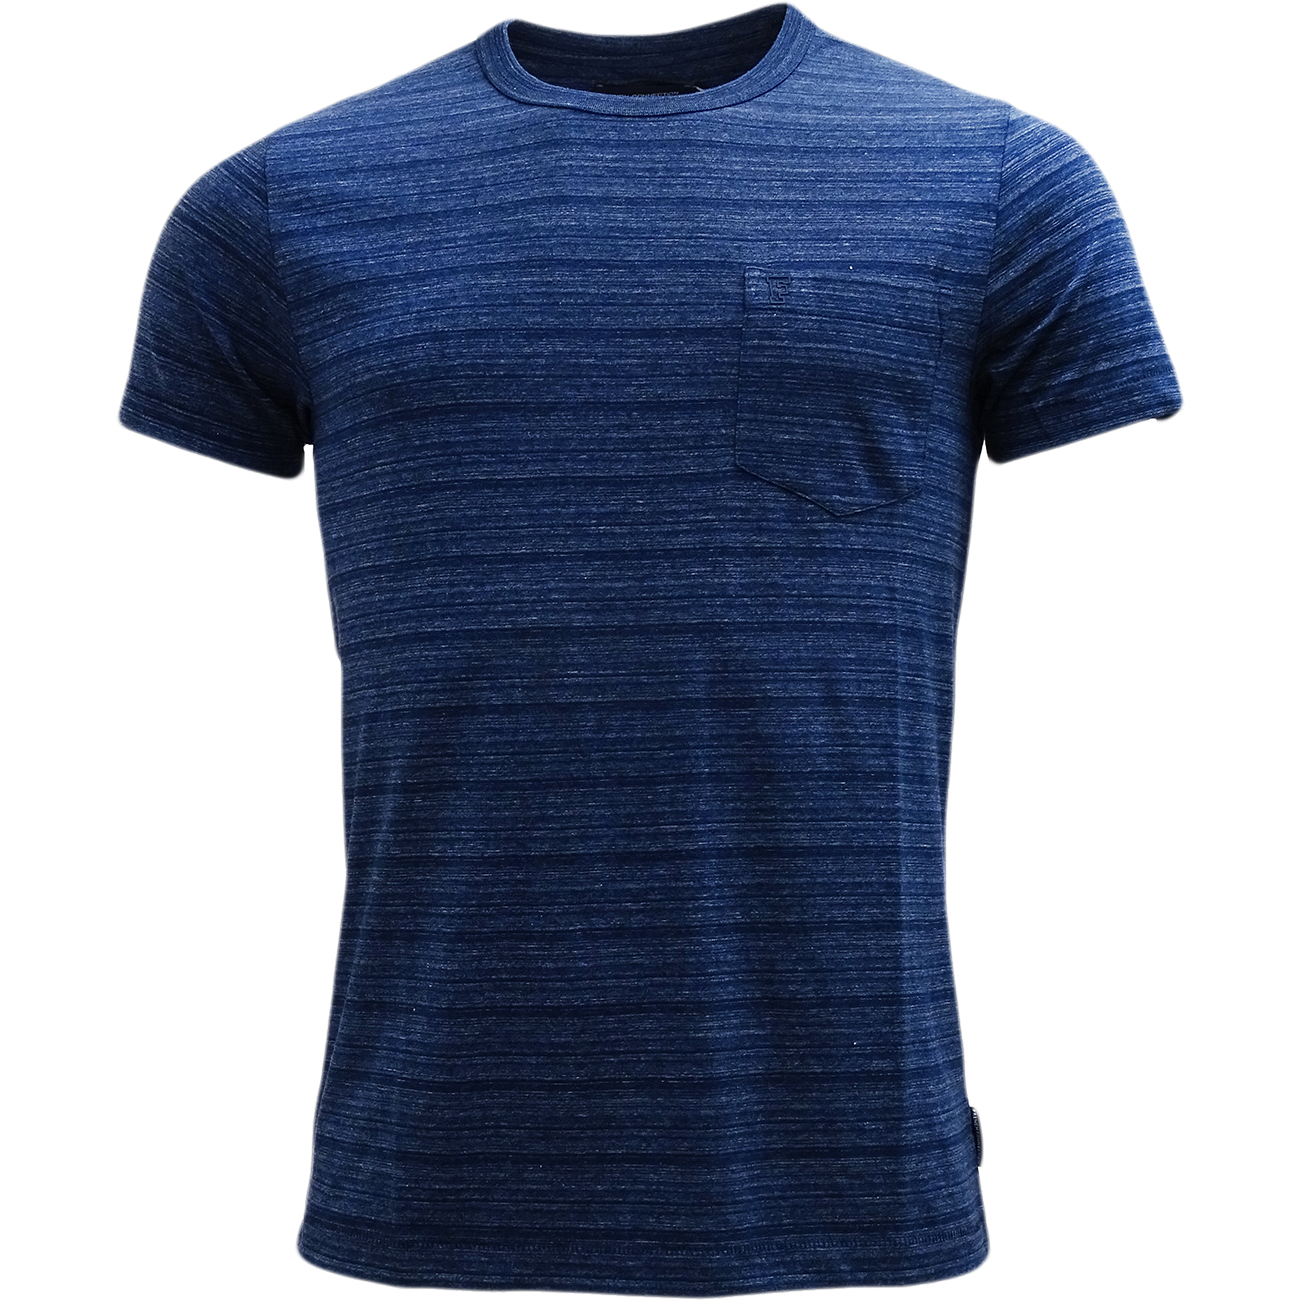 fcuk mens t shirts french connection short sleeve t shirt